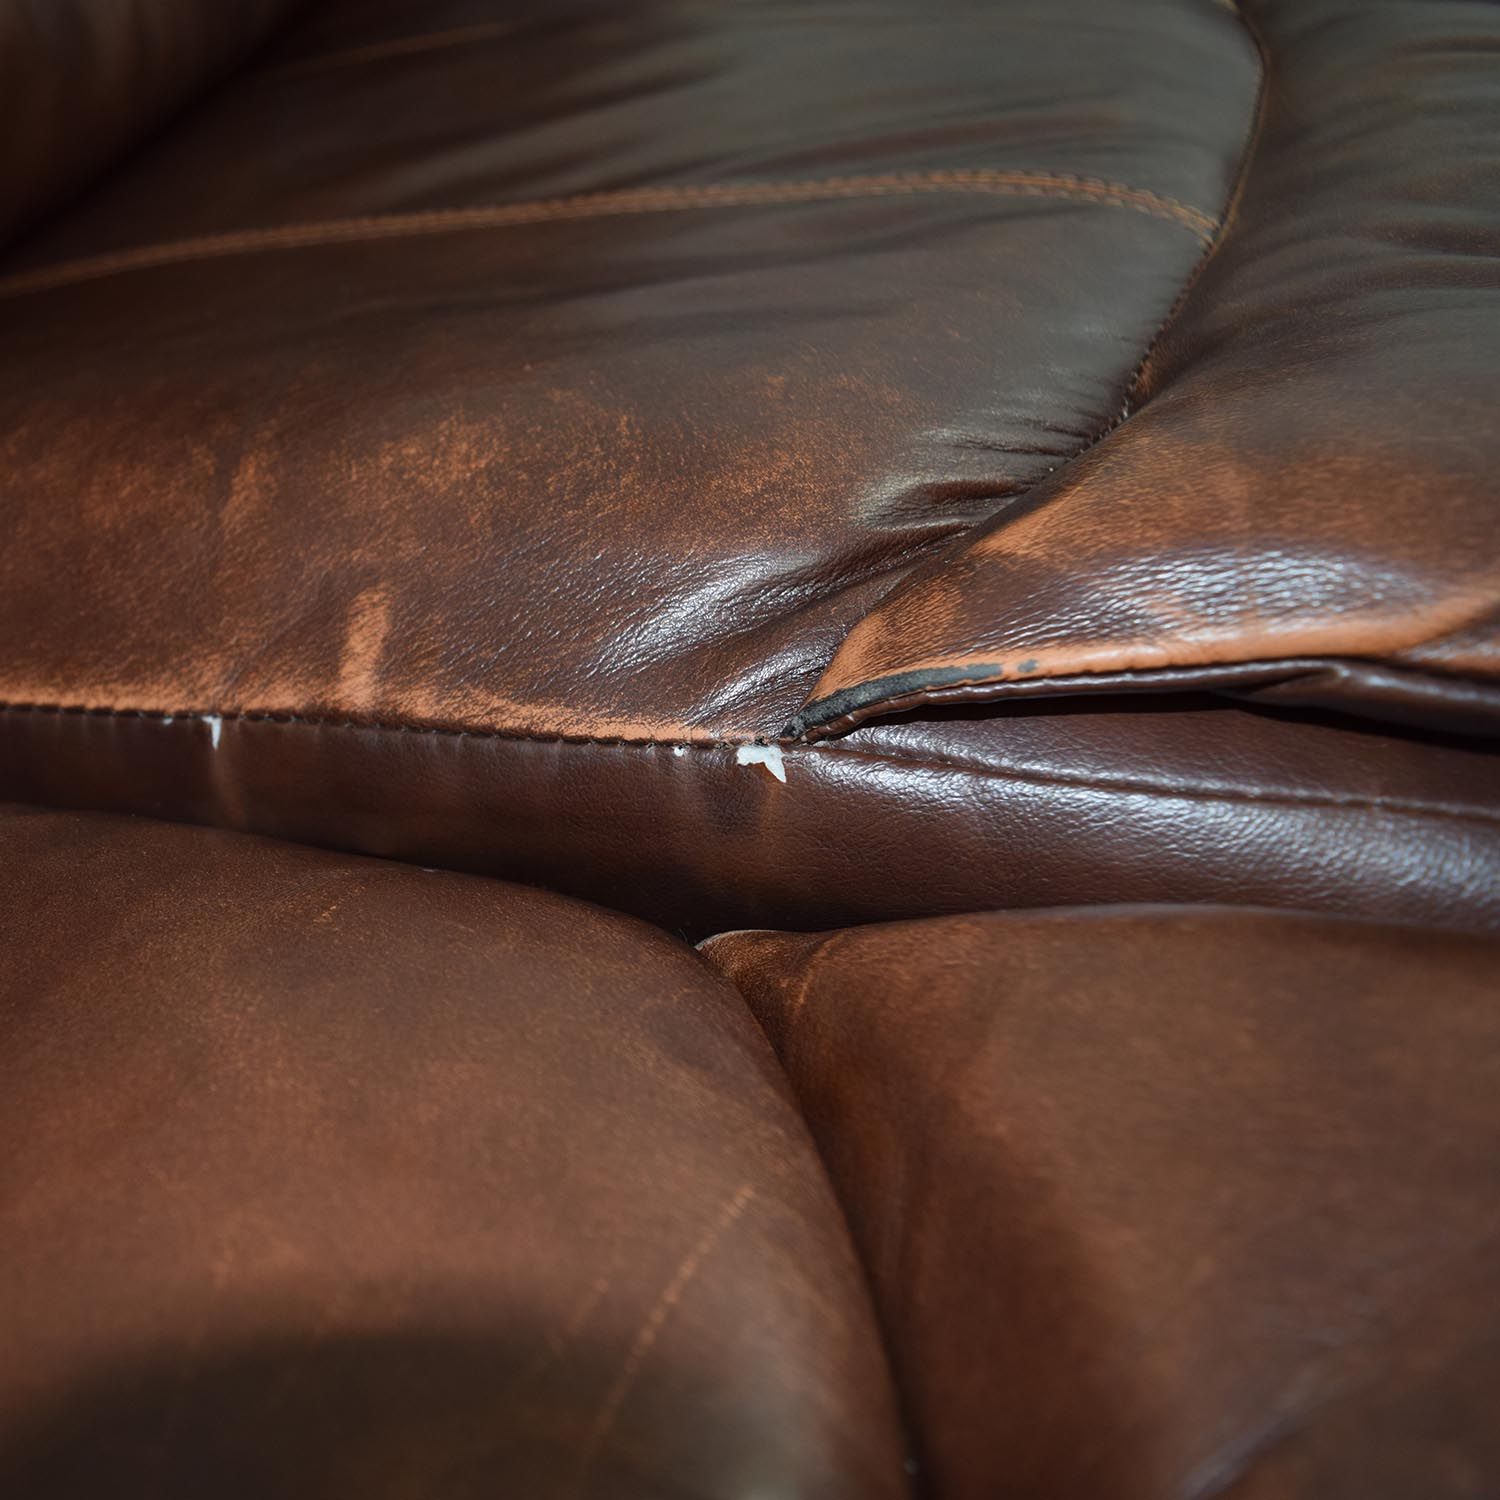 Ashleys Furniture Ashley Furniture Large Brown Leather Reclining Couch for sale